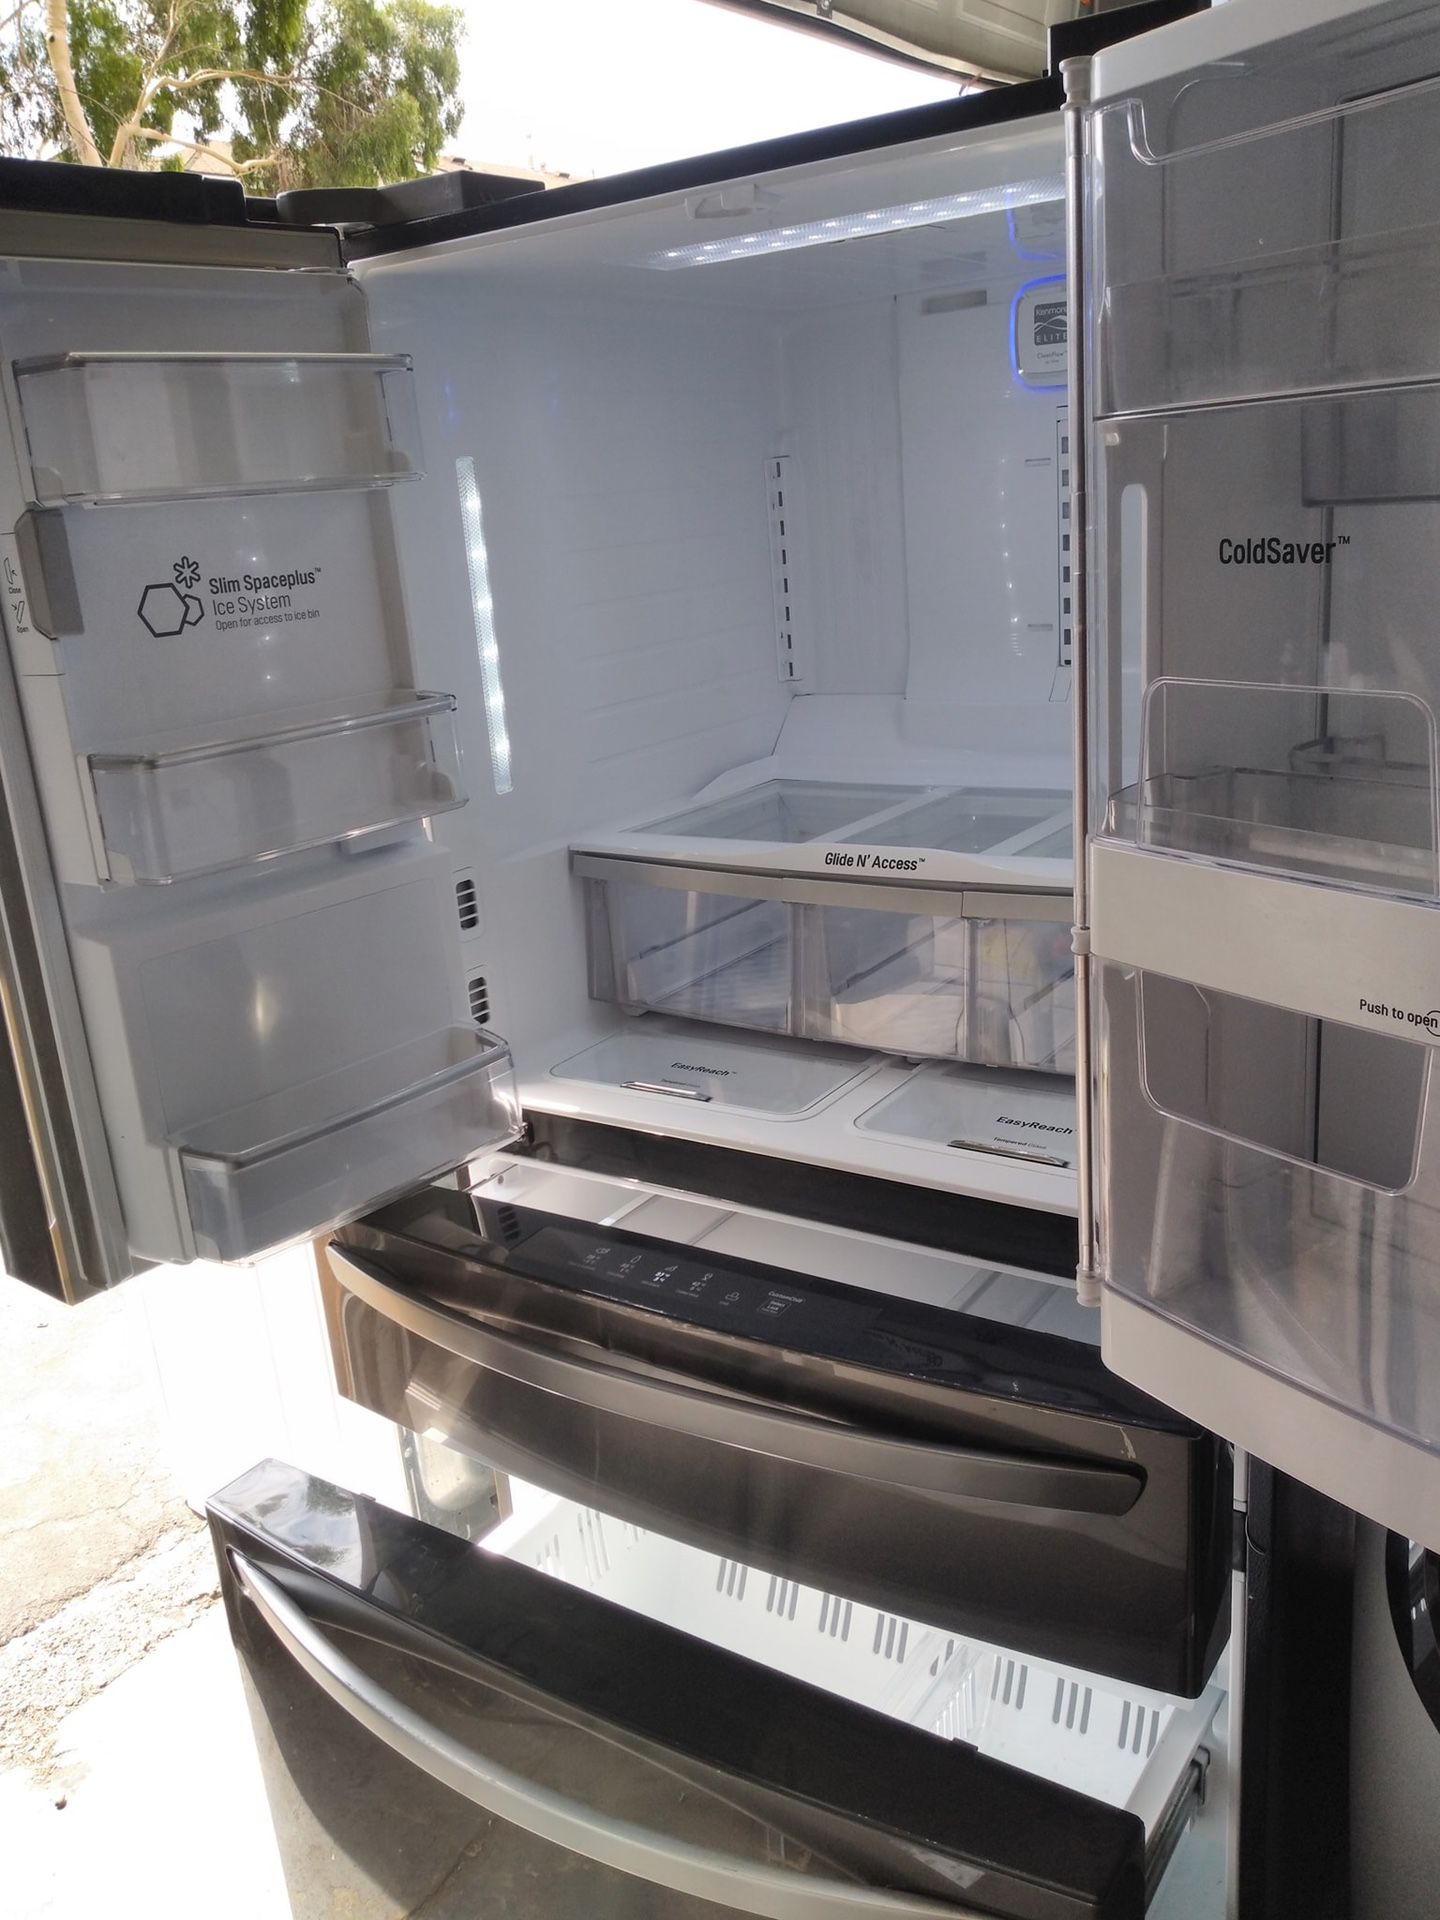 LG 4 Door Fridge Black Stainless Steel with water and ice dispenser ready to go with warranty. Custom chill drawer